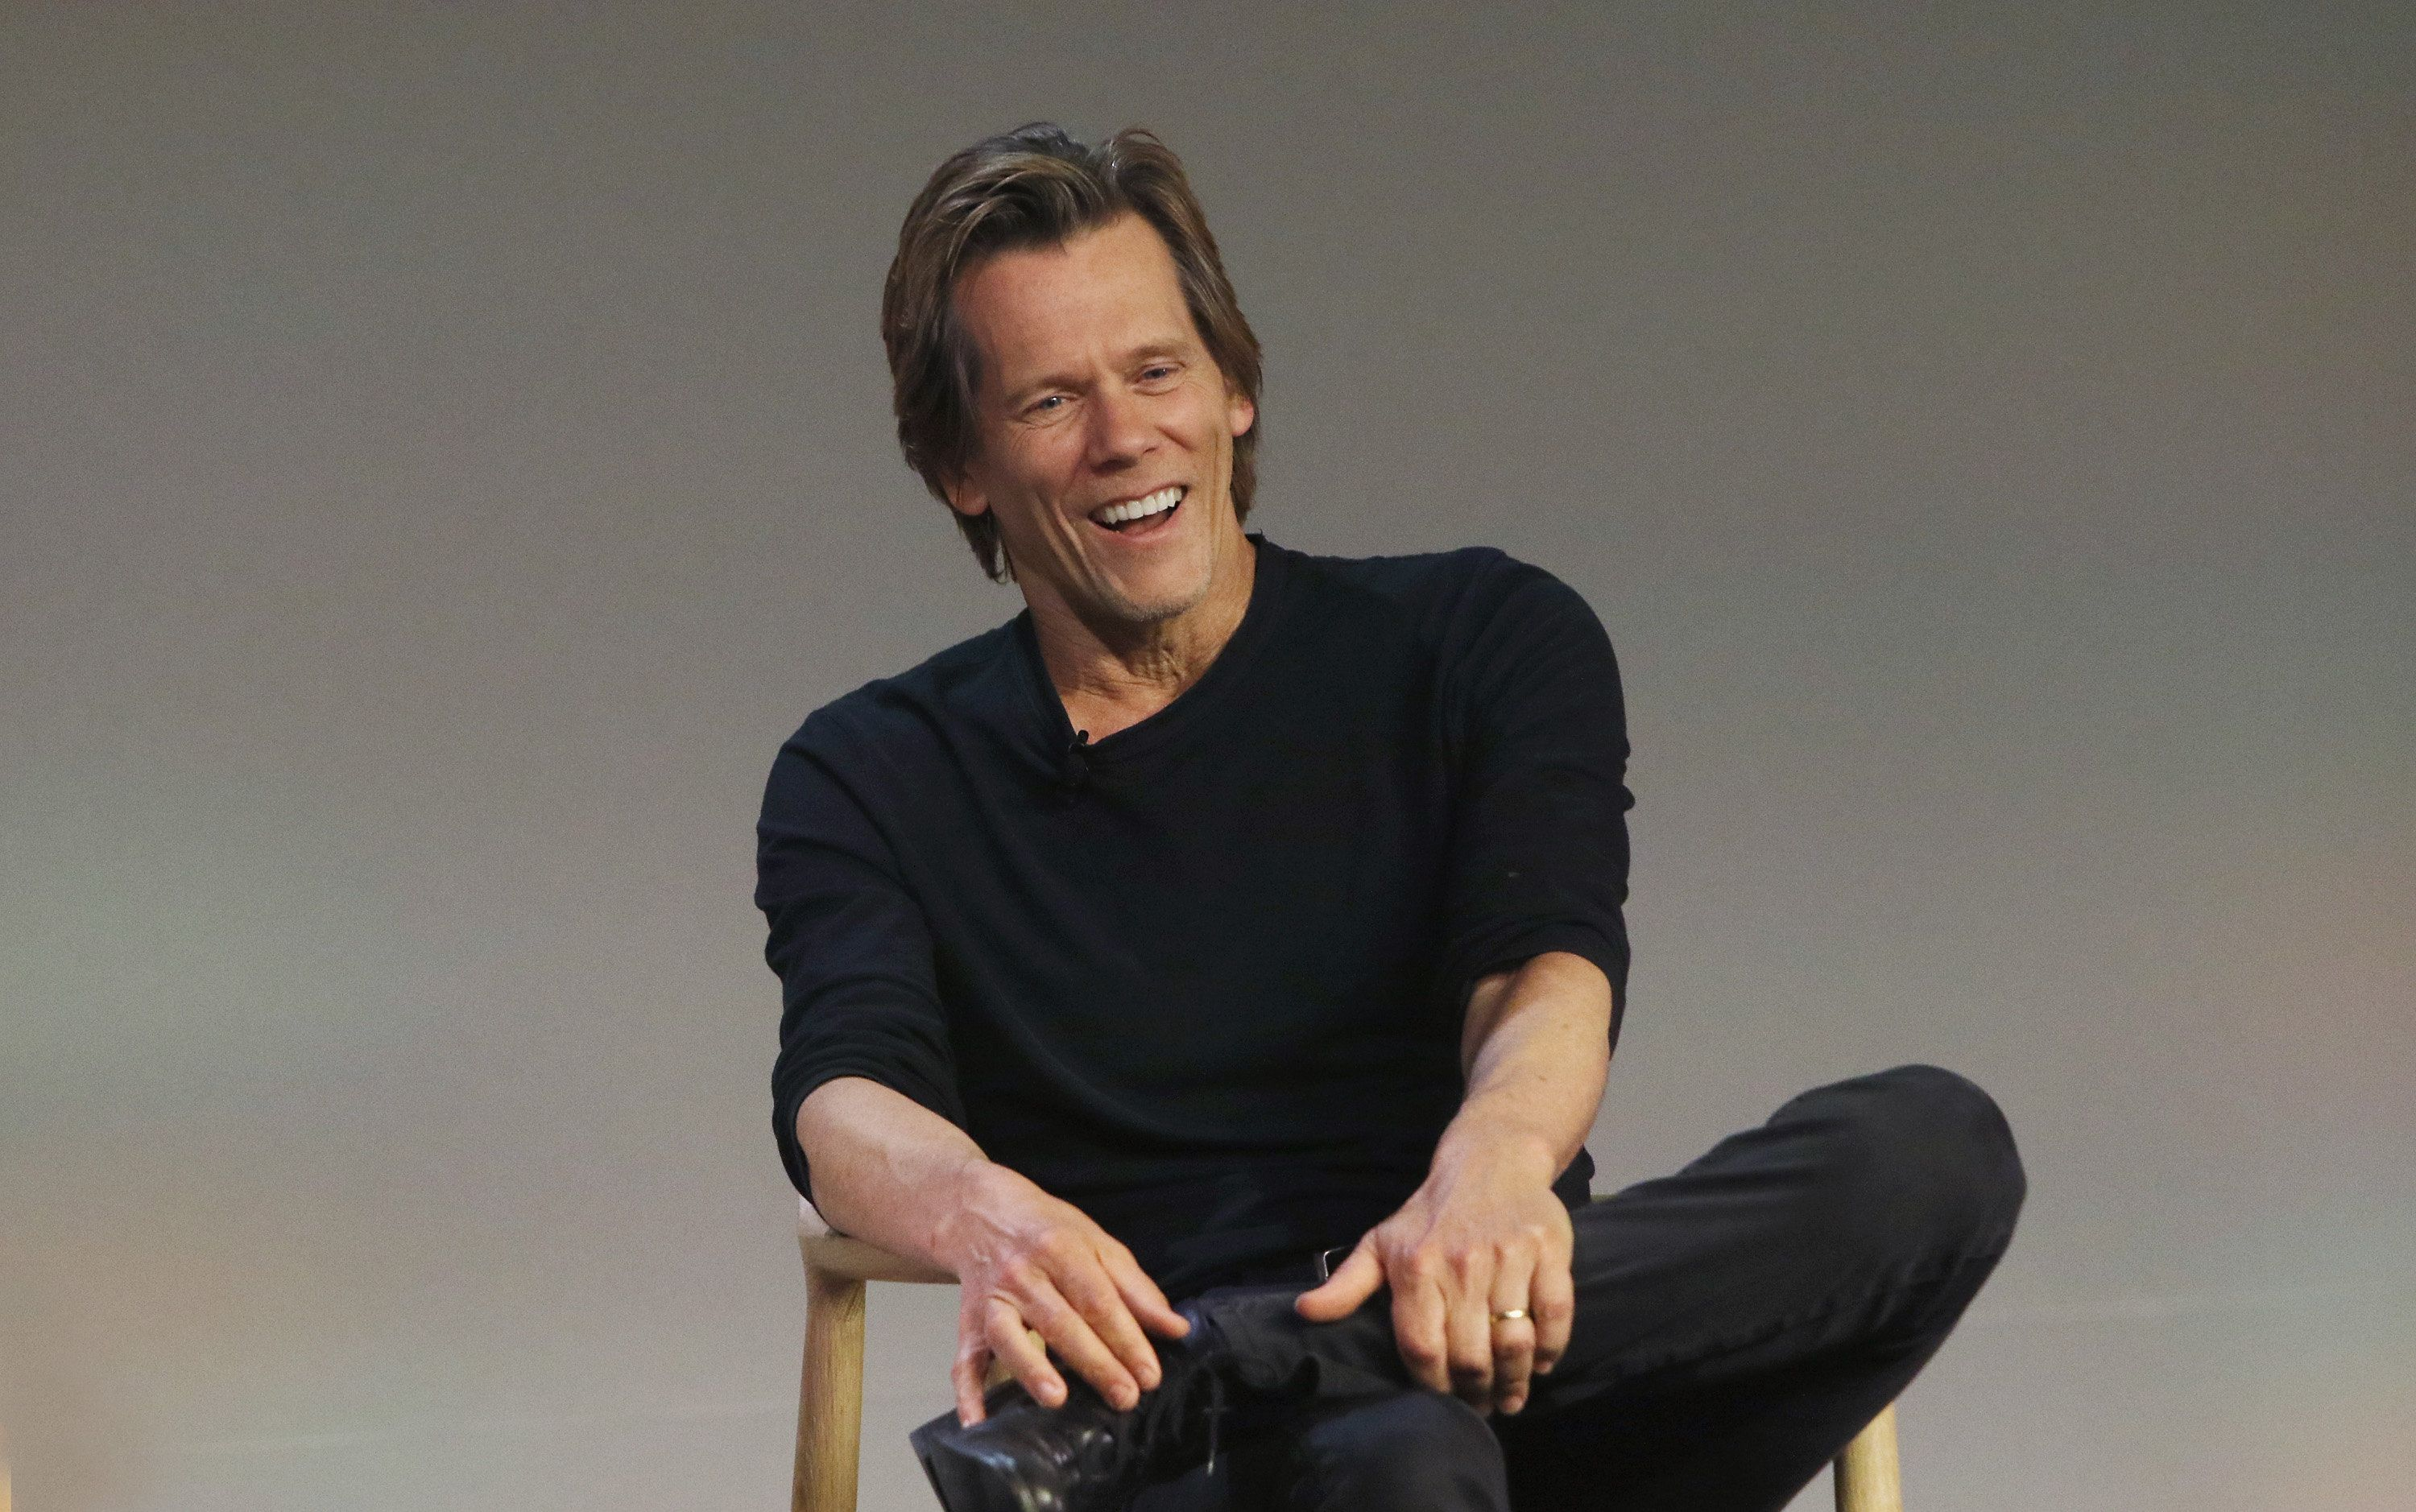 NEW YORK, NY - JULY 29:  Actor Kevin Bacon attends the Apple Store Soho presents Meet the Filmmaker: Kevin Bacon, 'Cop Car' at Apple Store Soho on July 29, 2015 in New York City.  (Photo by Jim Spellman/WireImage)